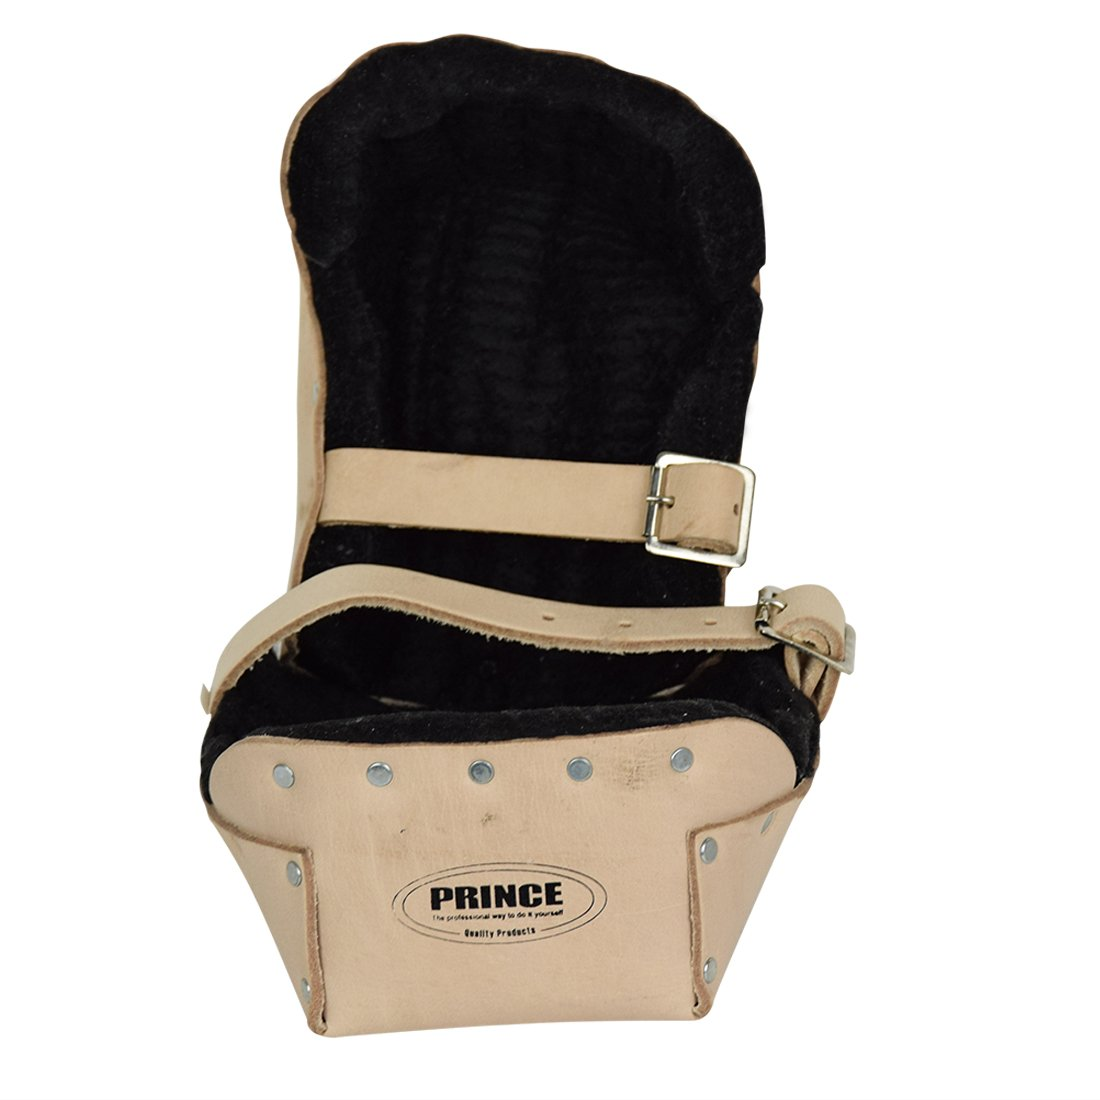 Prince P-309B Heavy Duty Top Grain Leather Kneepads with Thick Felt Lining for Construction by Prince (Image #3)